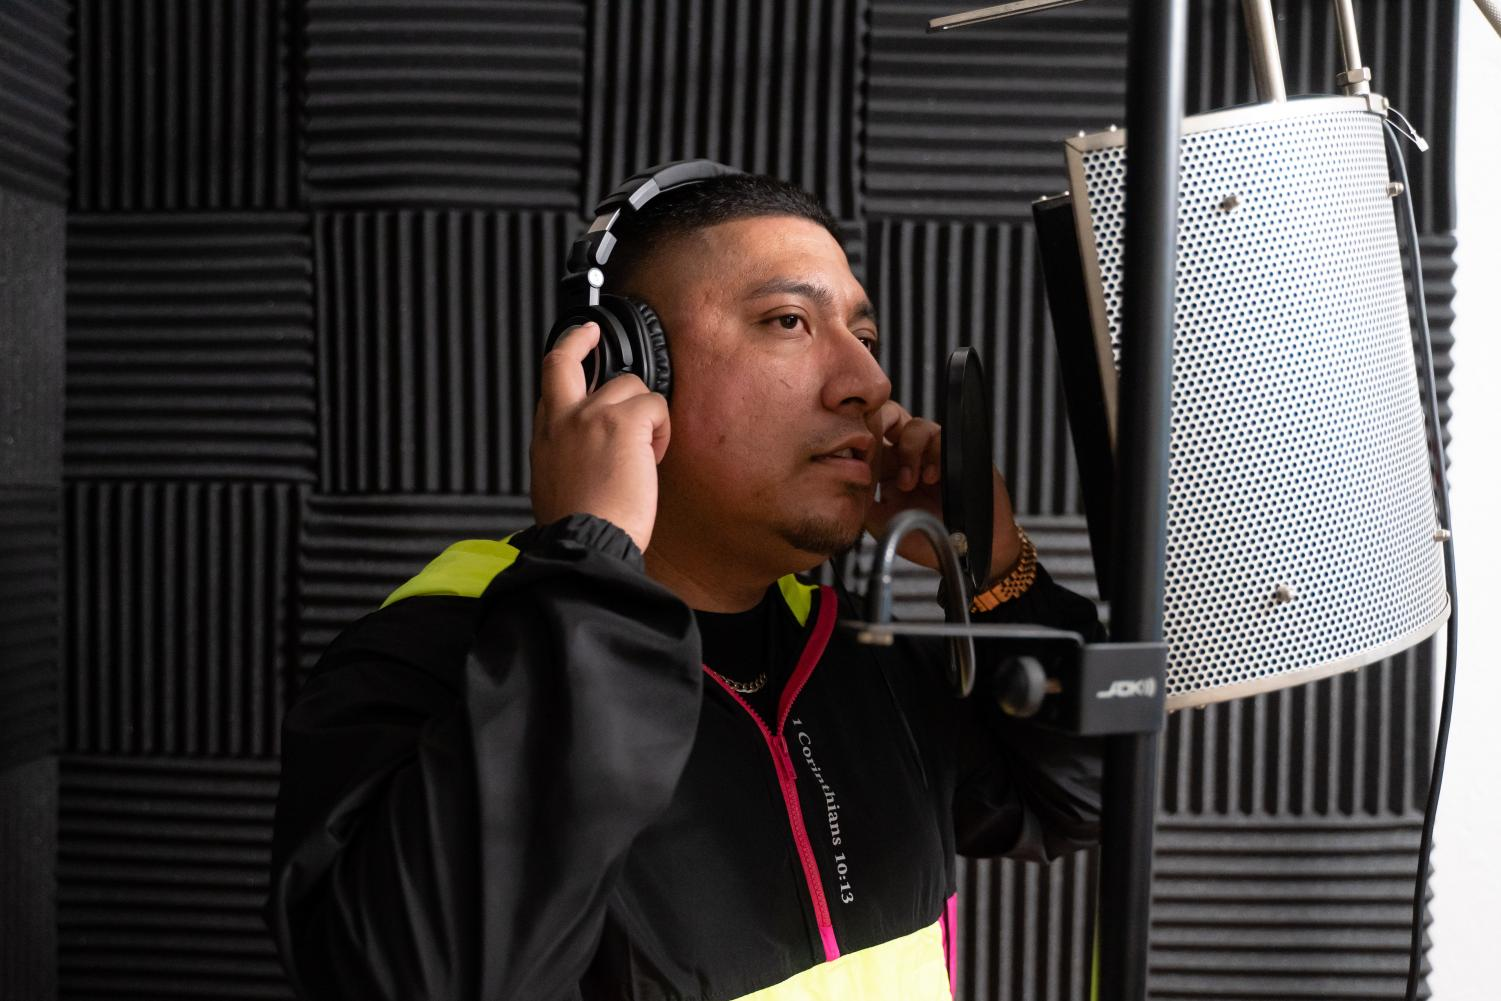 Jay Cruz, Sac State alumnus, was photographed on Oct. 1 inside his home studio. Cruz is a music producer, rapper, singer, DJ, and entrepreneur based in Sacramento.